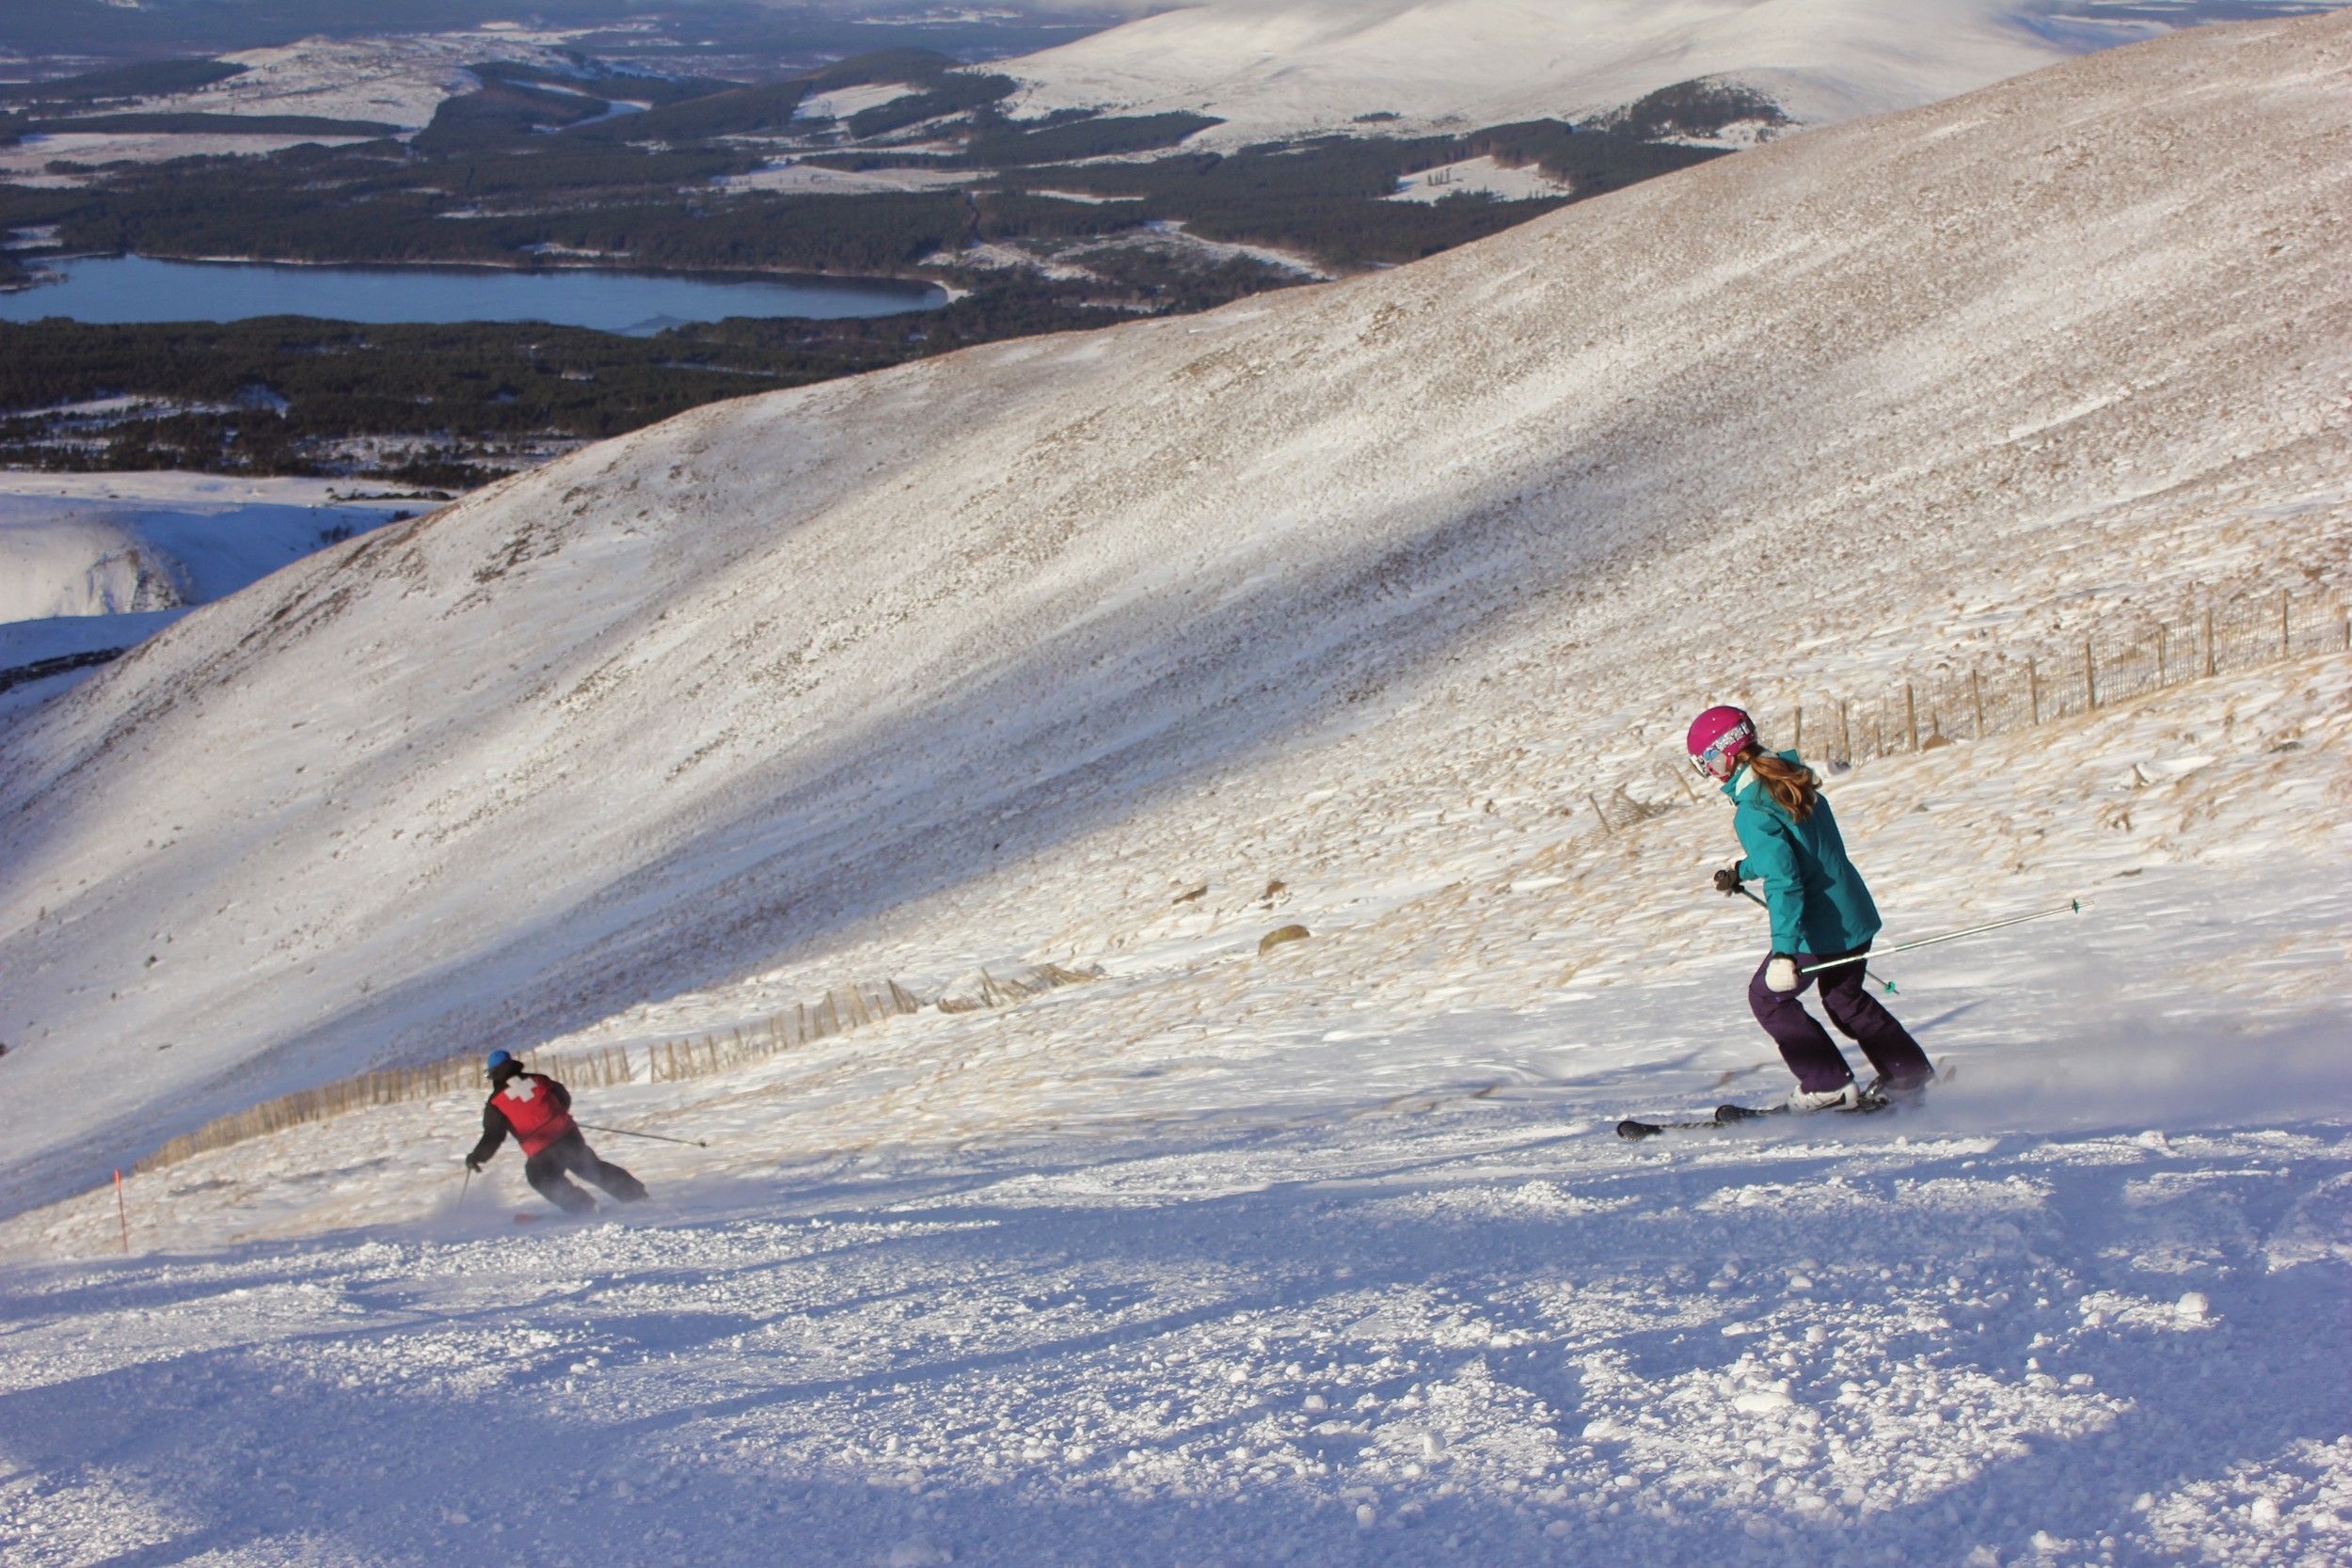 Skiing the White Lady run on Cairngorm Mountain